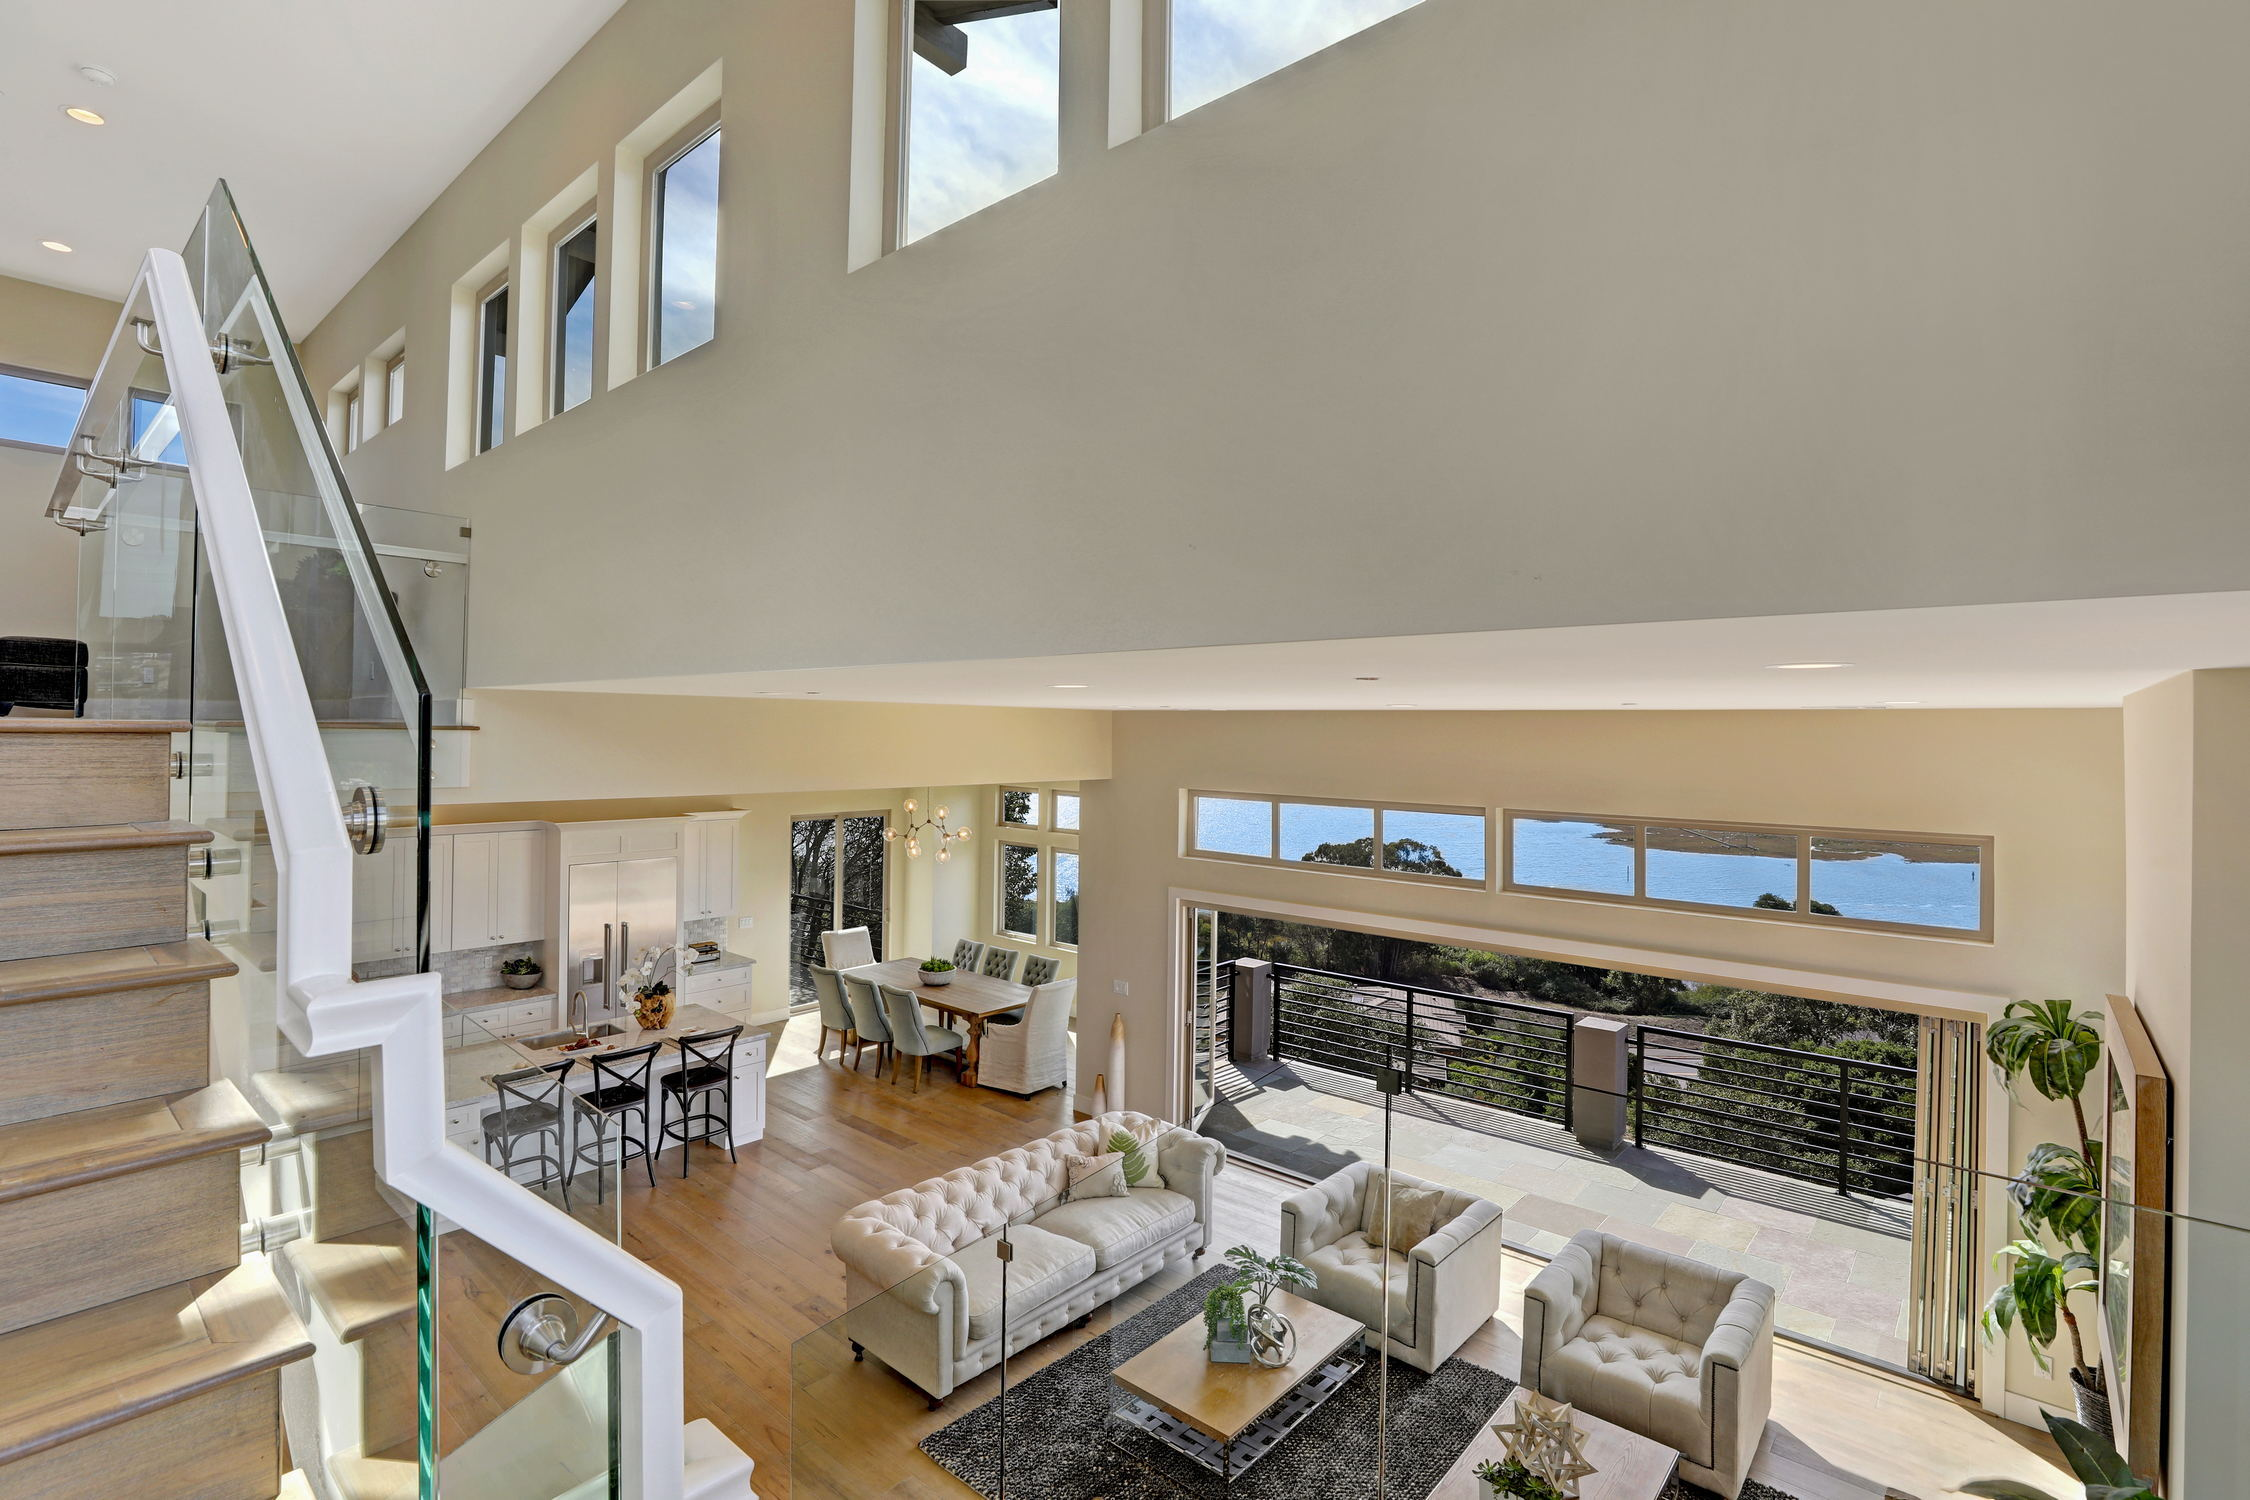 31 Drakes Cove, Larkspur Homes for Sale17 MLS - Own Marin with Compass - Mill Valley Realtor.jpg